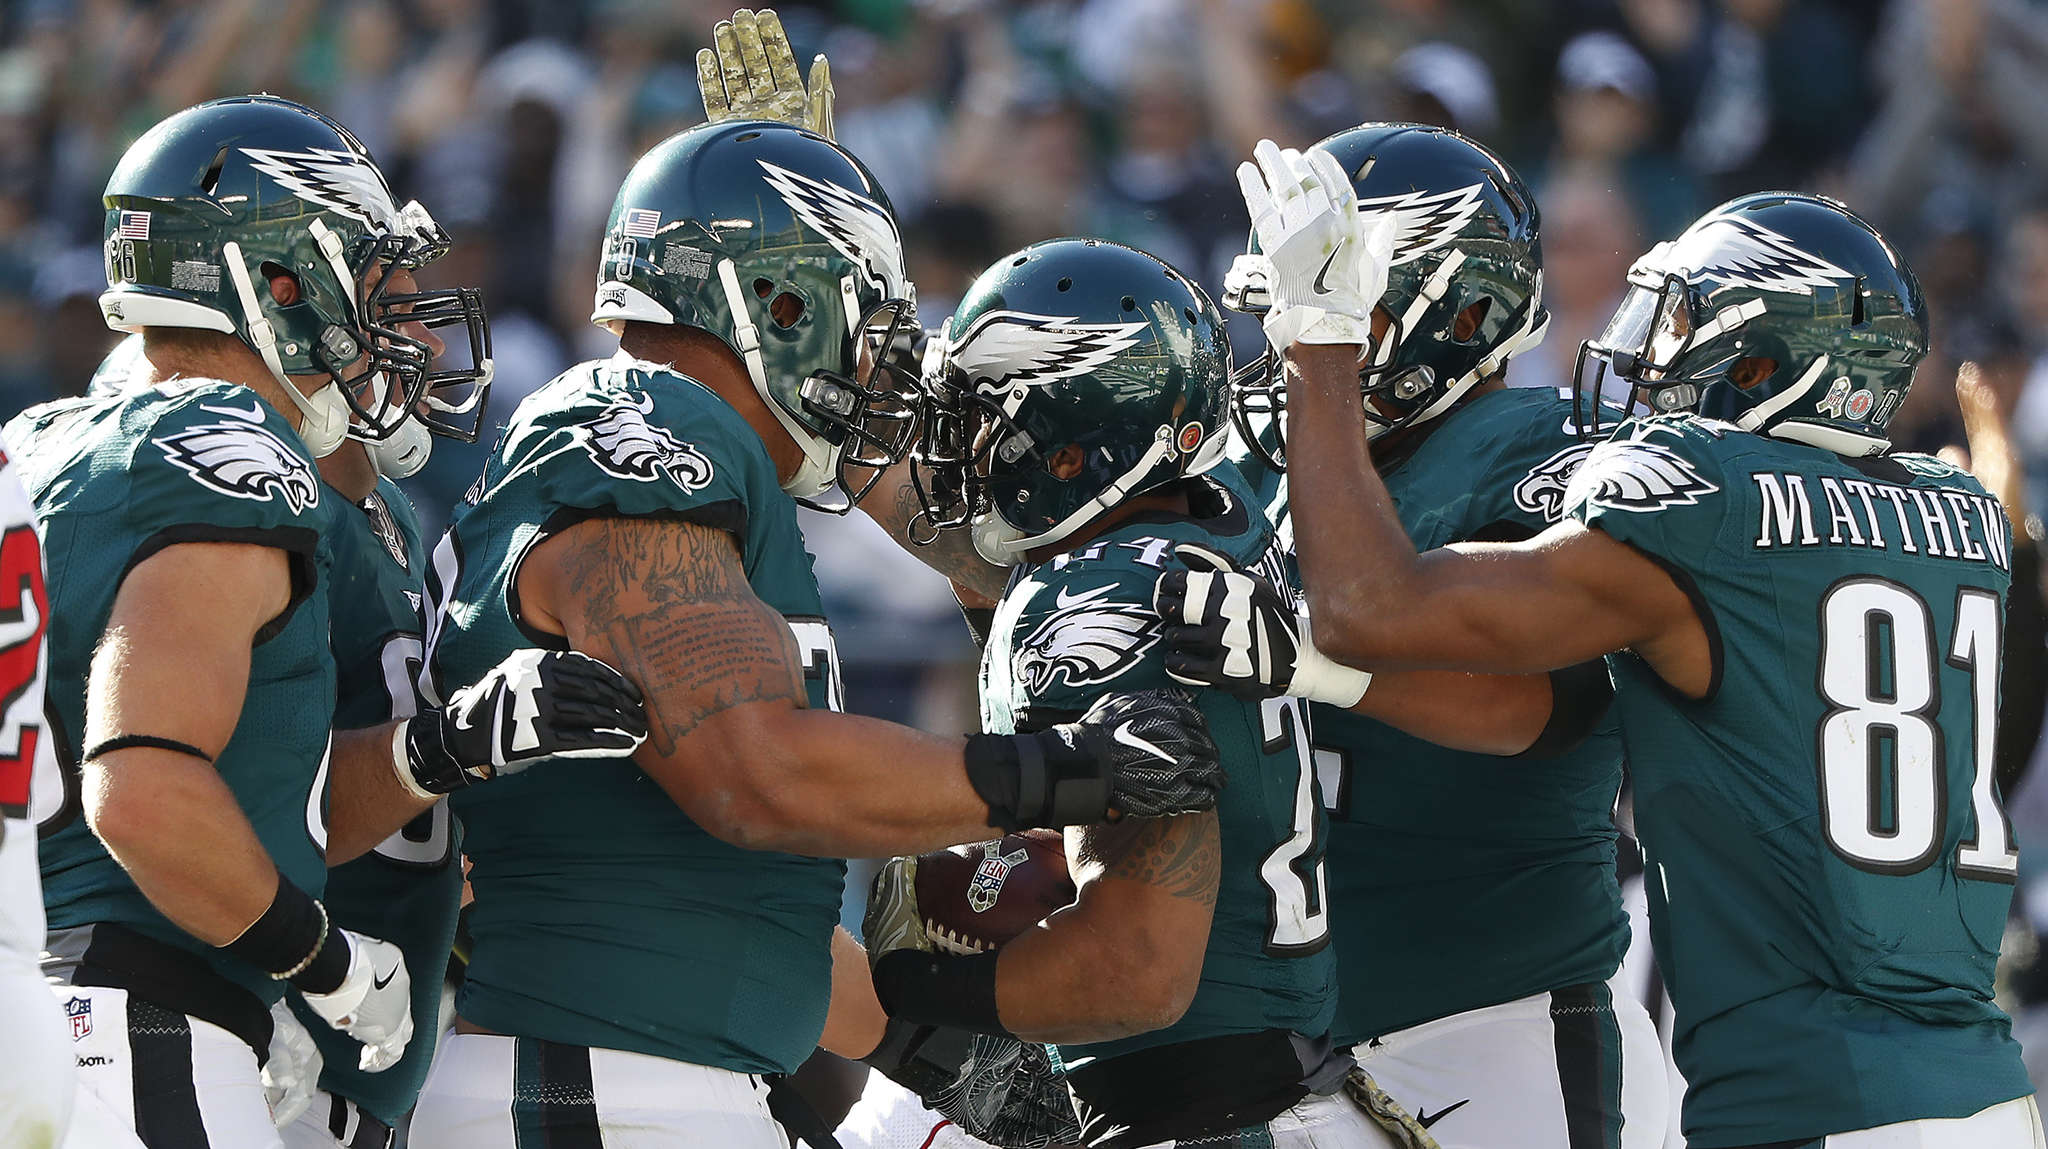 Ryan Mathews is popular with his teammates after scoring on opening drive. DAVID MAIALETTI / Staff Photographer